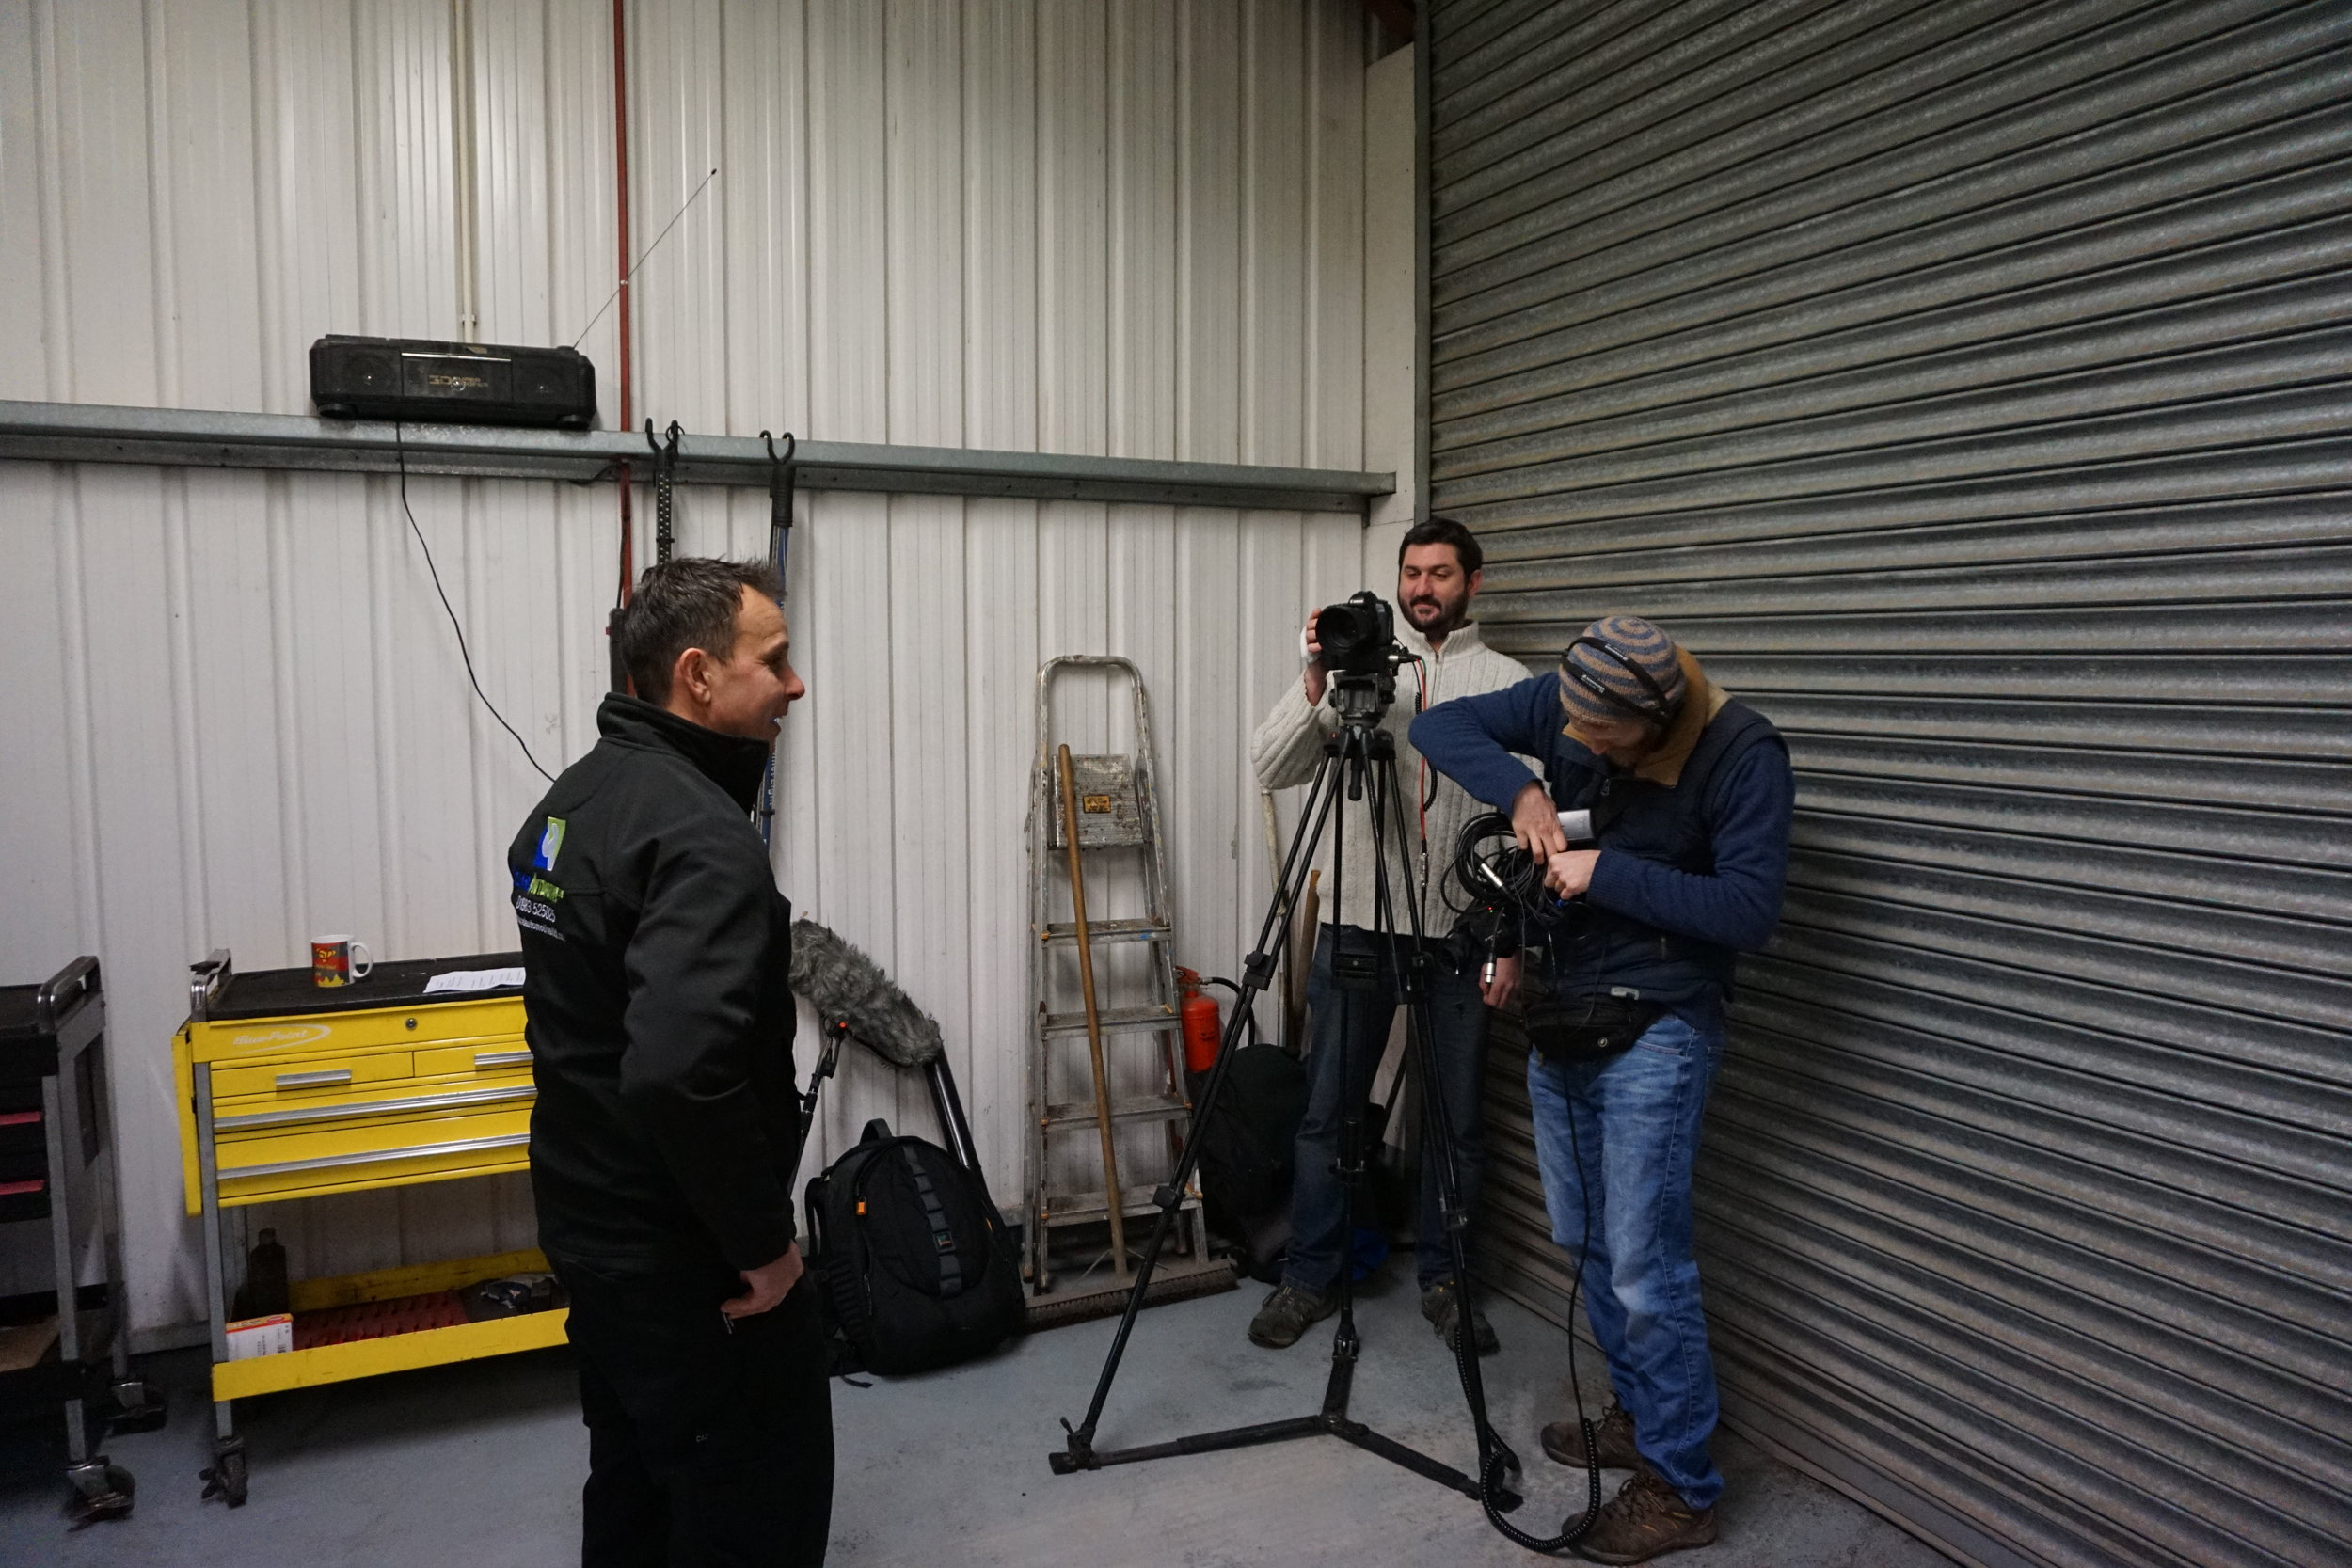 Filming with a customer